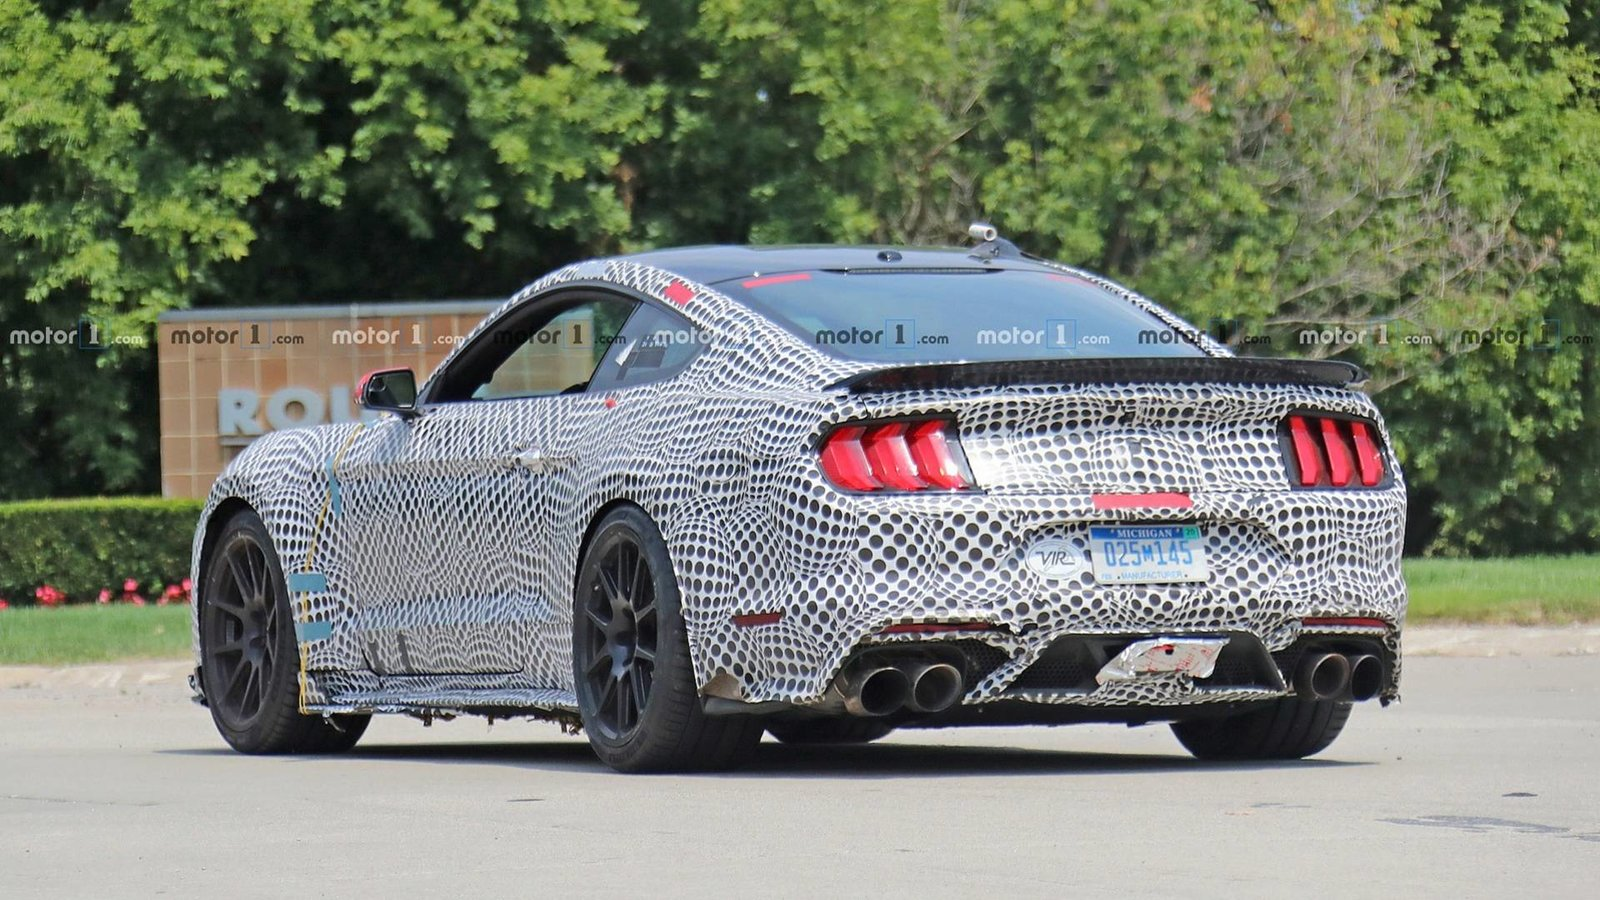 2019-ford-mustang-shelby-gt500-spy-photo (3).jpg